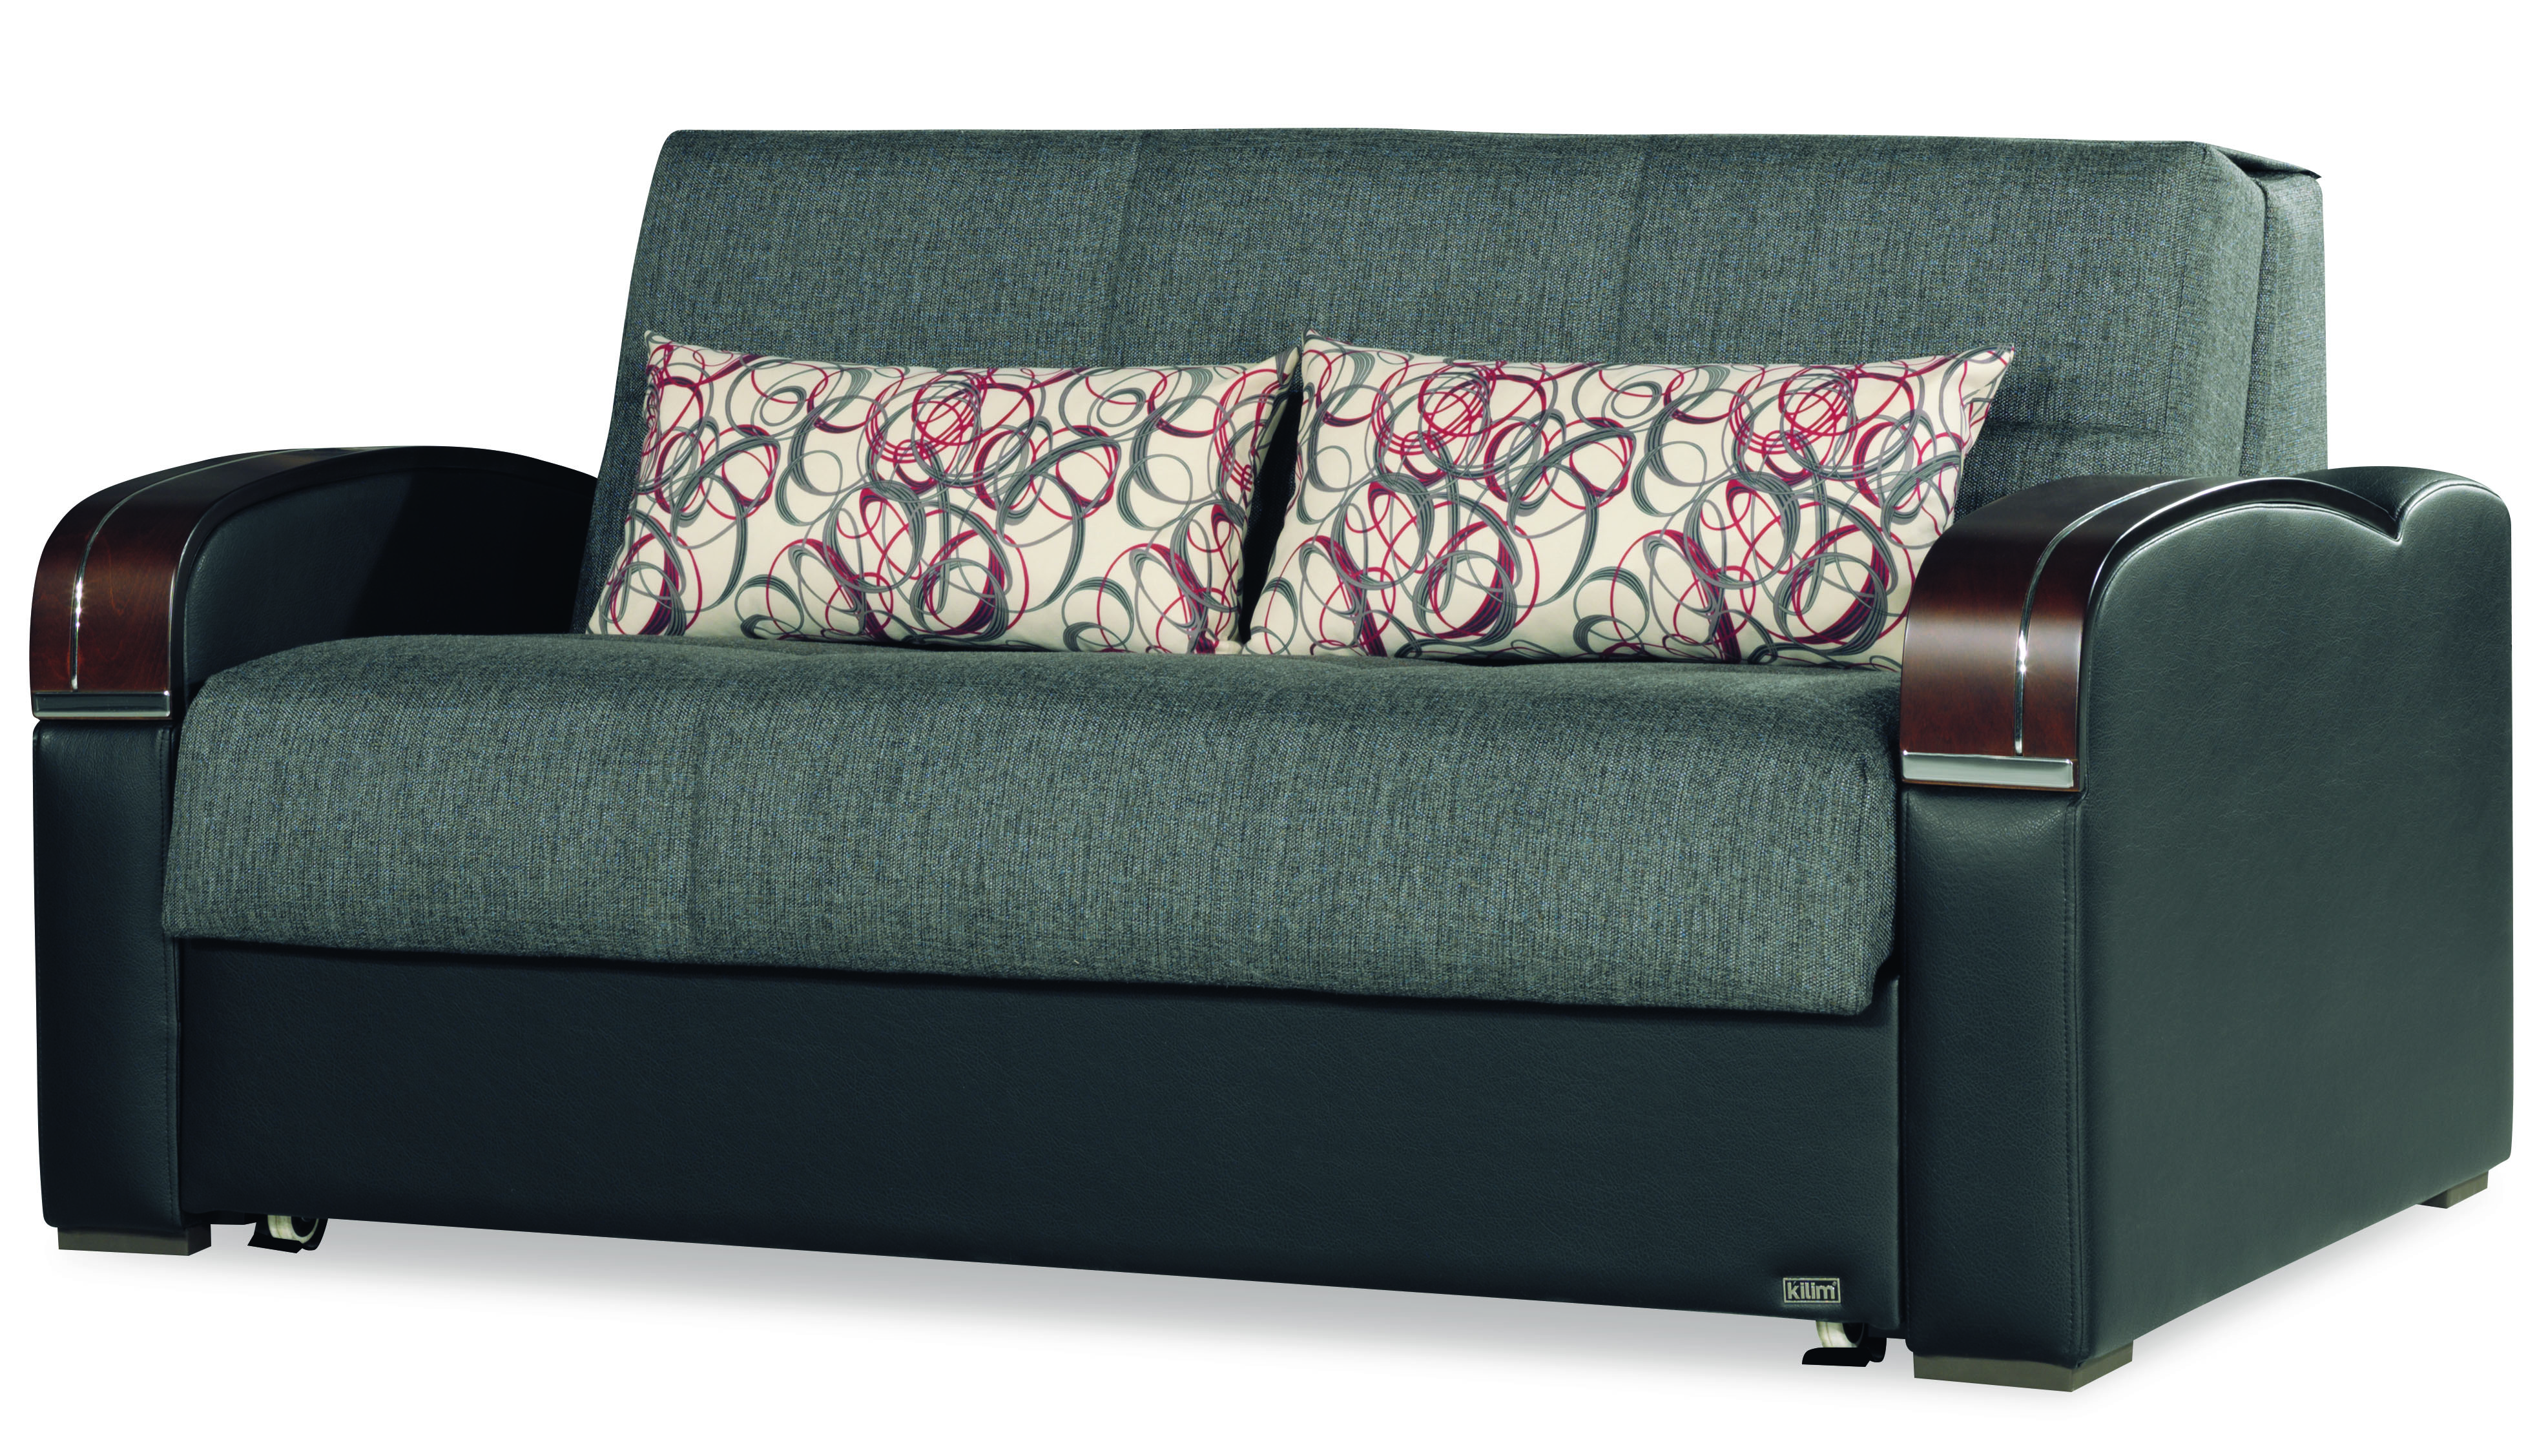 sleep plus gray convertible loveseat by casamode